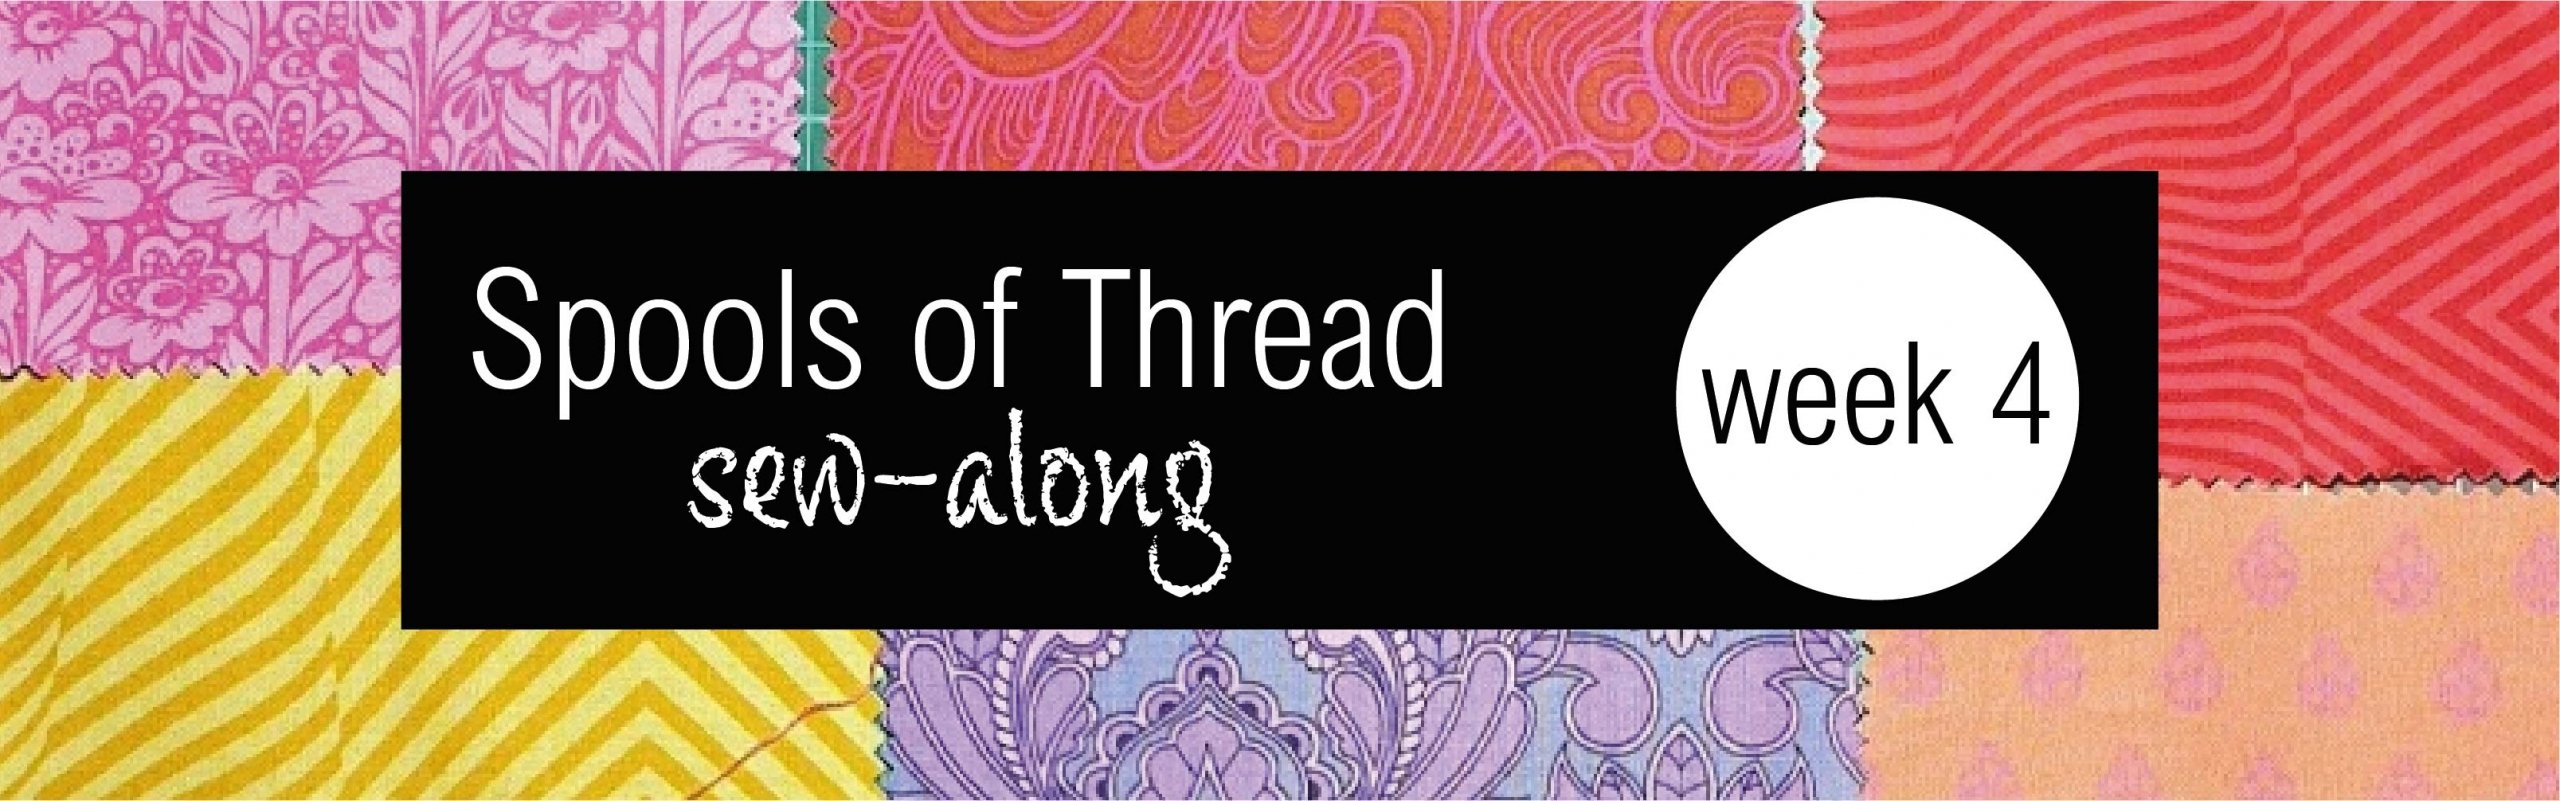 Spools of Thread Week 4